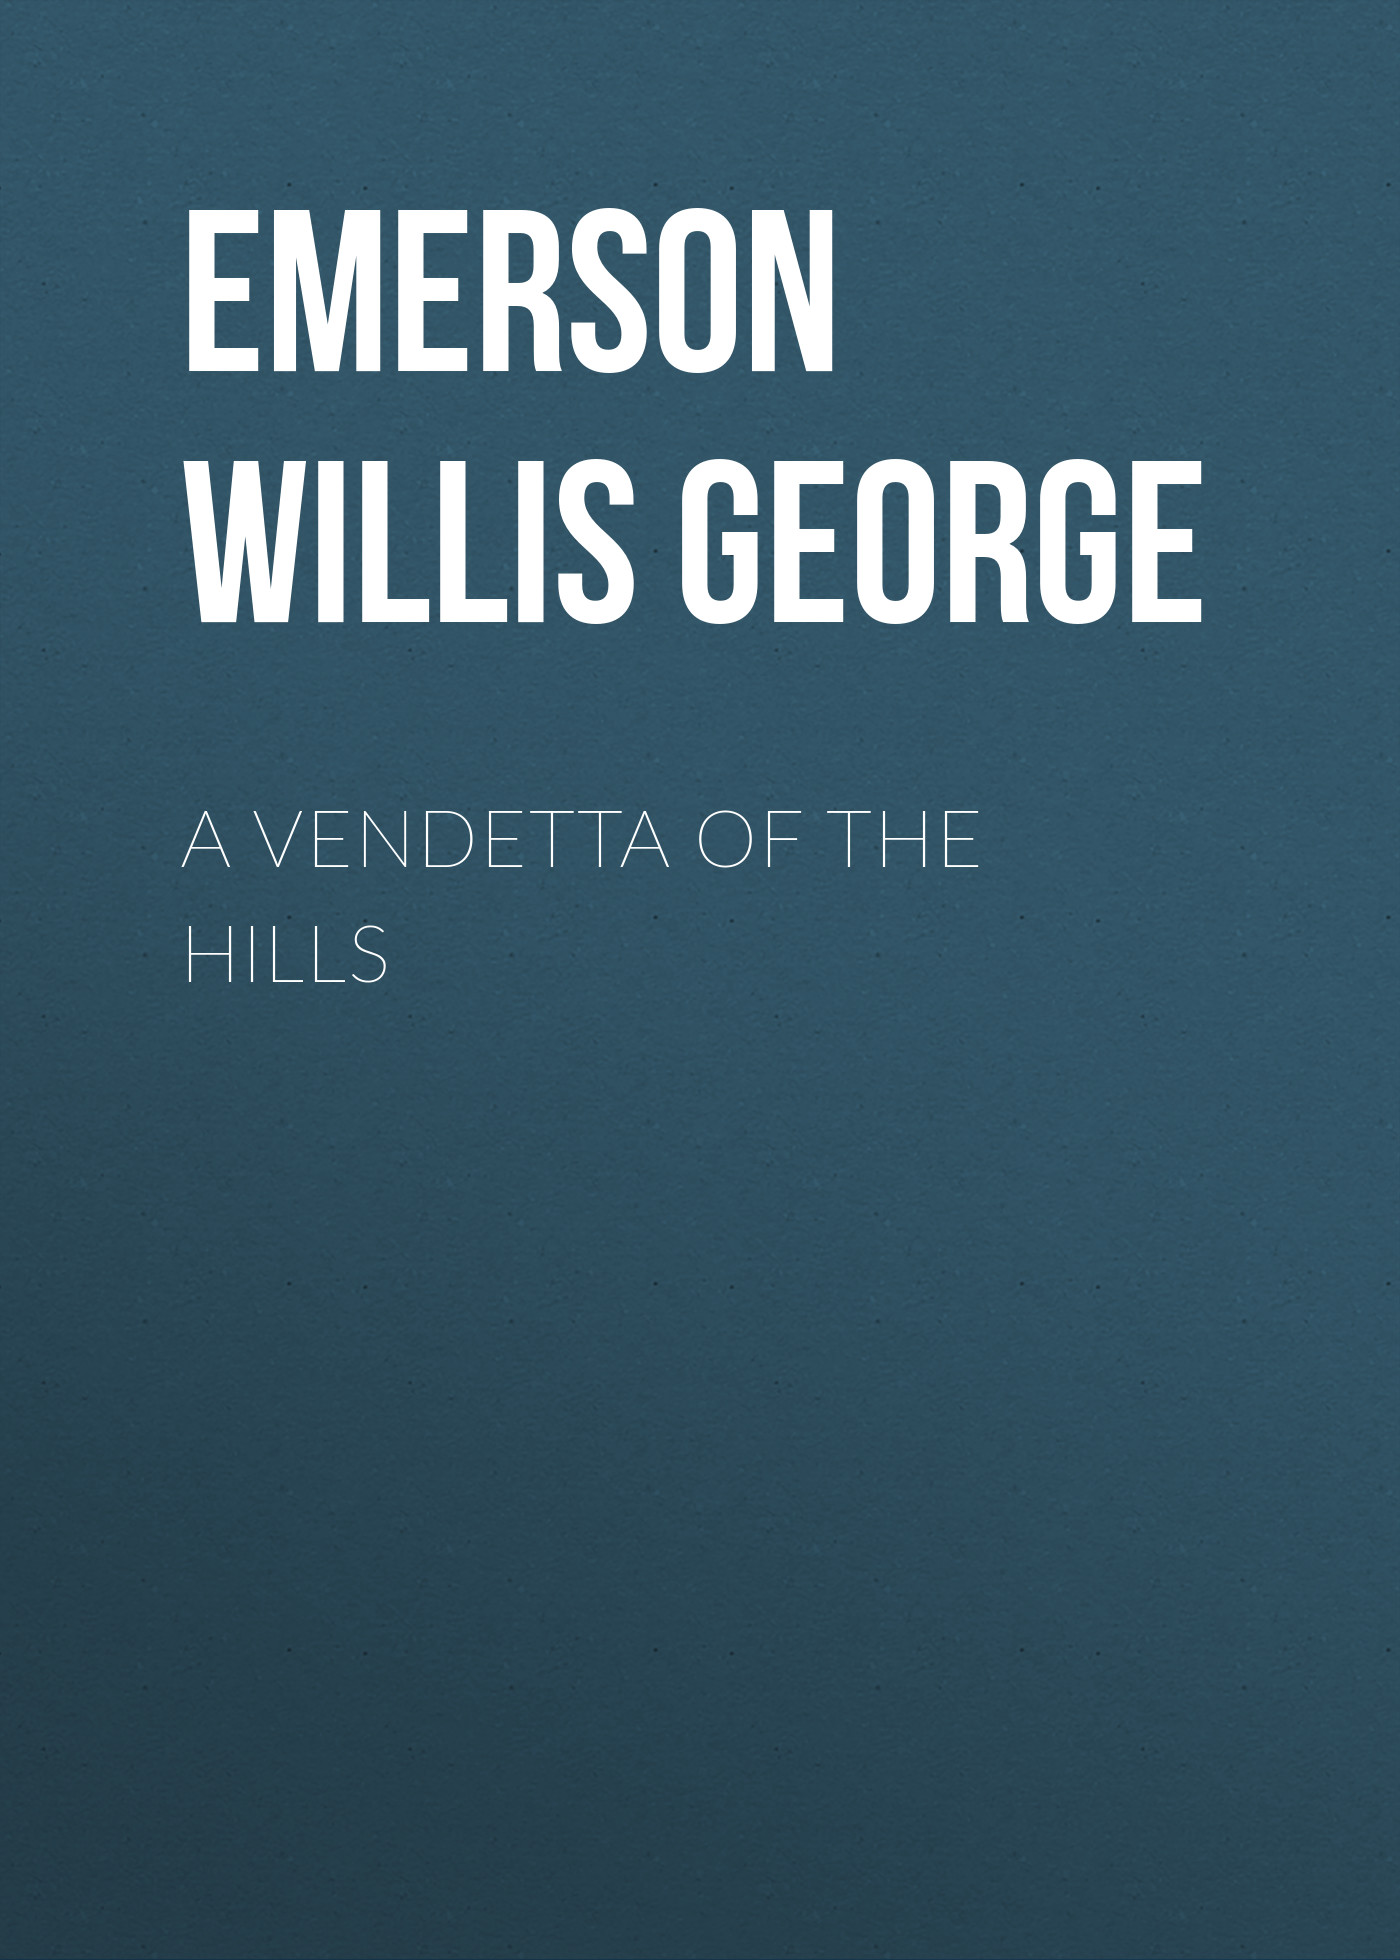 Emerson Willis George A Vendetta of the Hills management of anterior circulation aneurysms of circle of willis